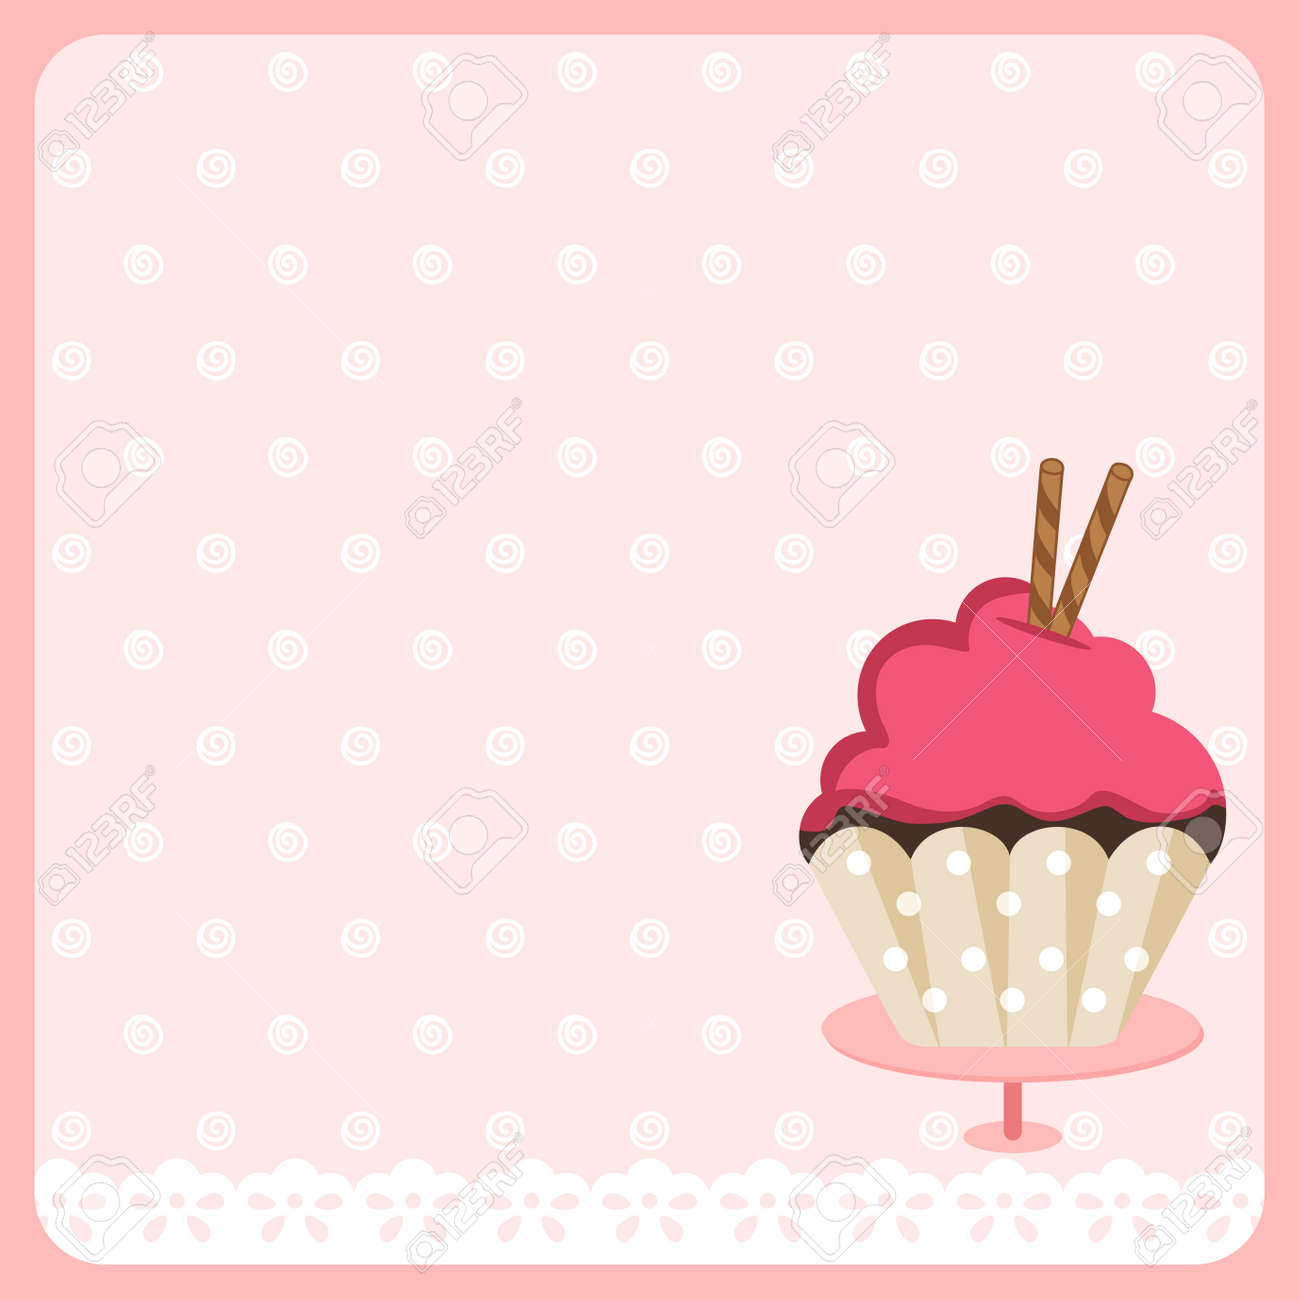 cute cupcake background royalty free cliparts vectors and stock illustration image 49745166 cute cupcake background